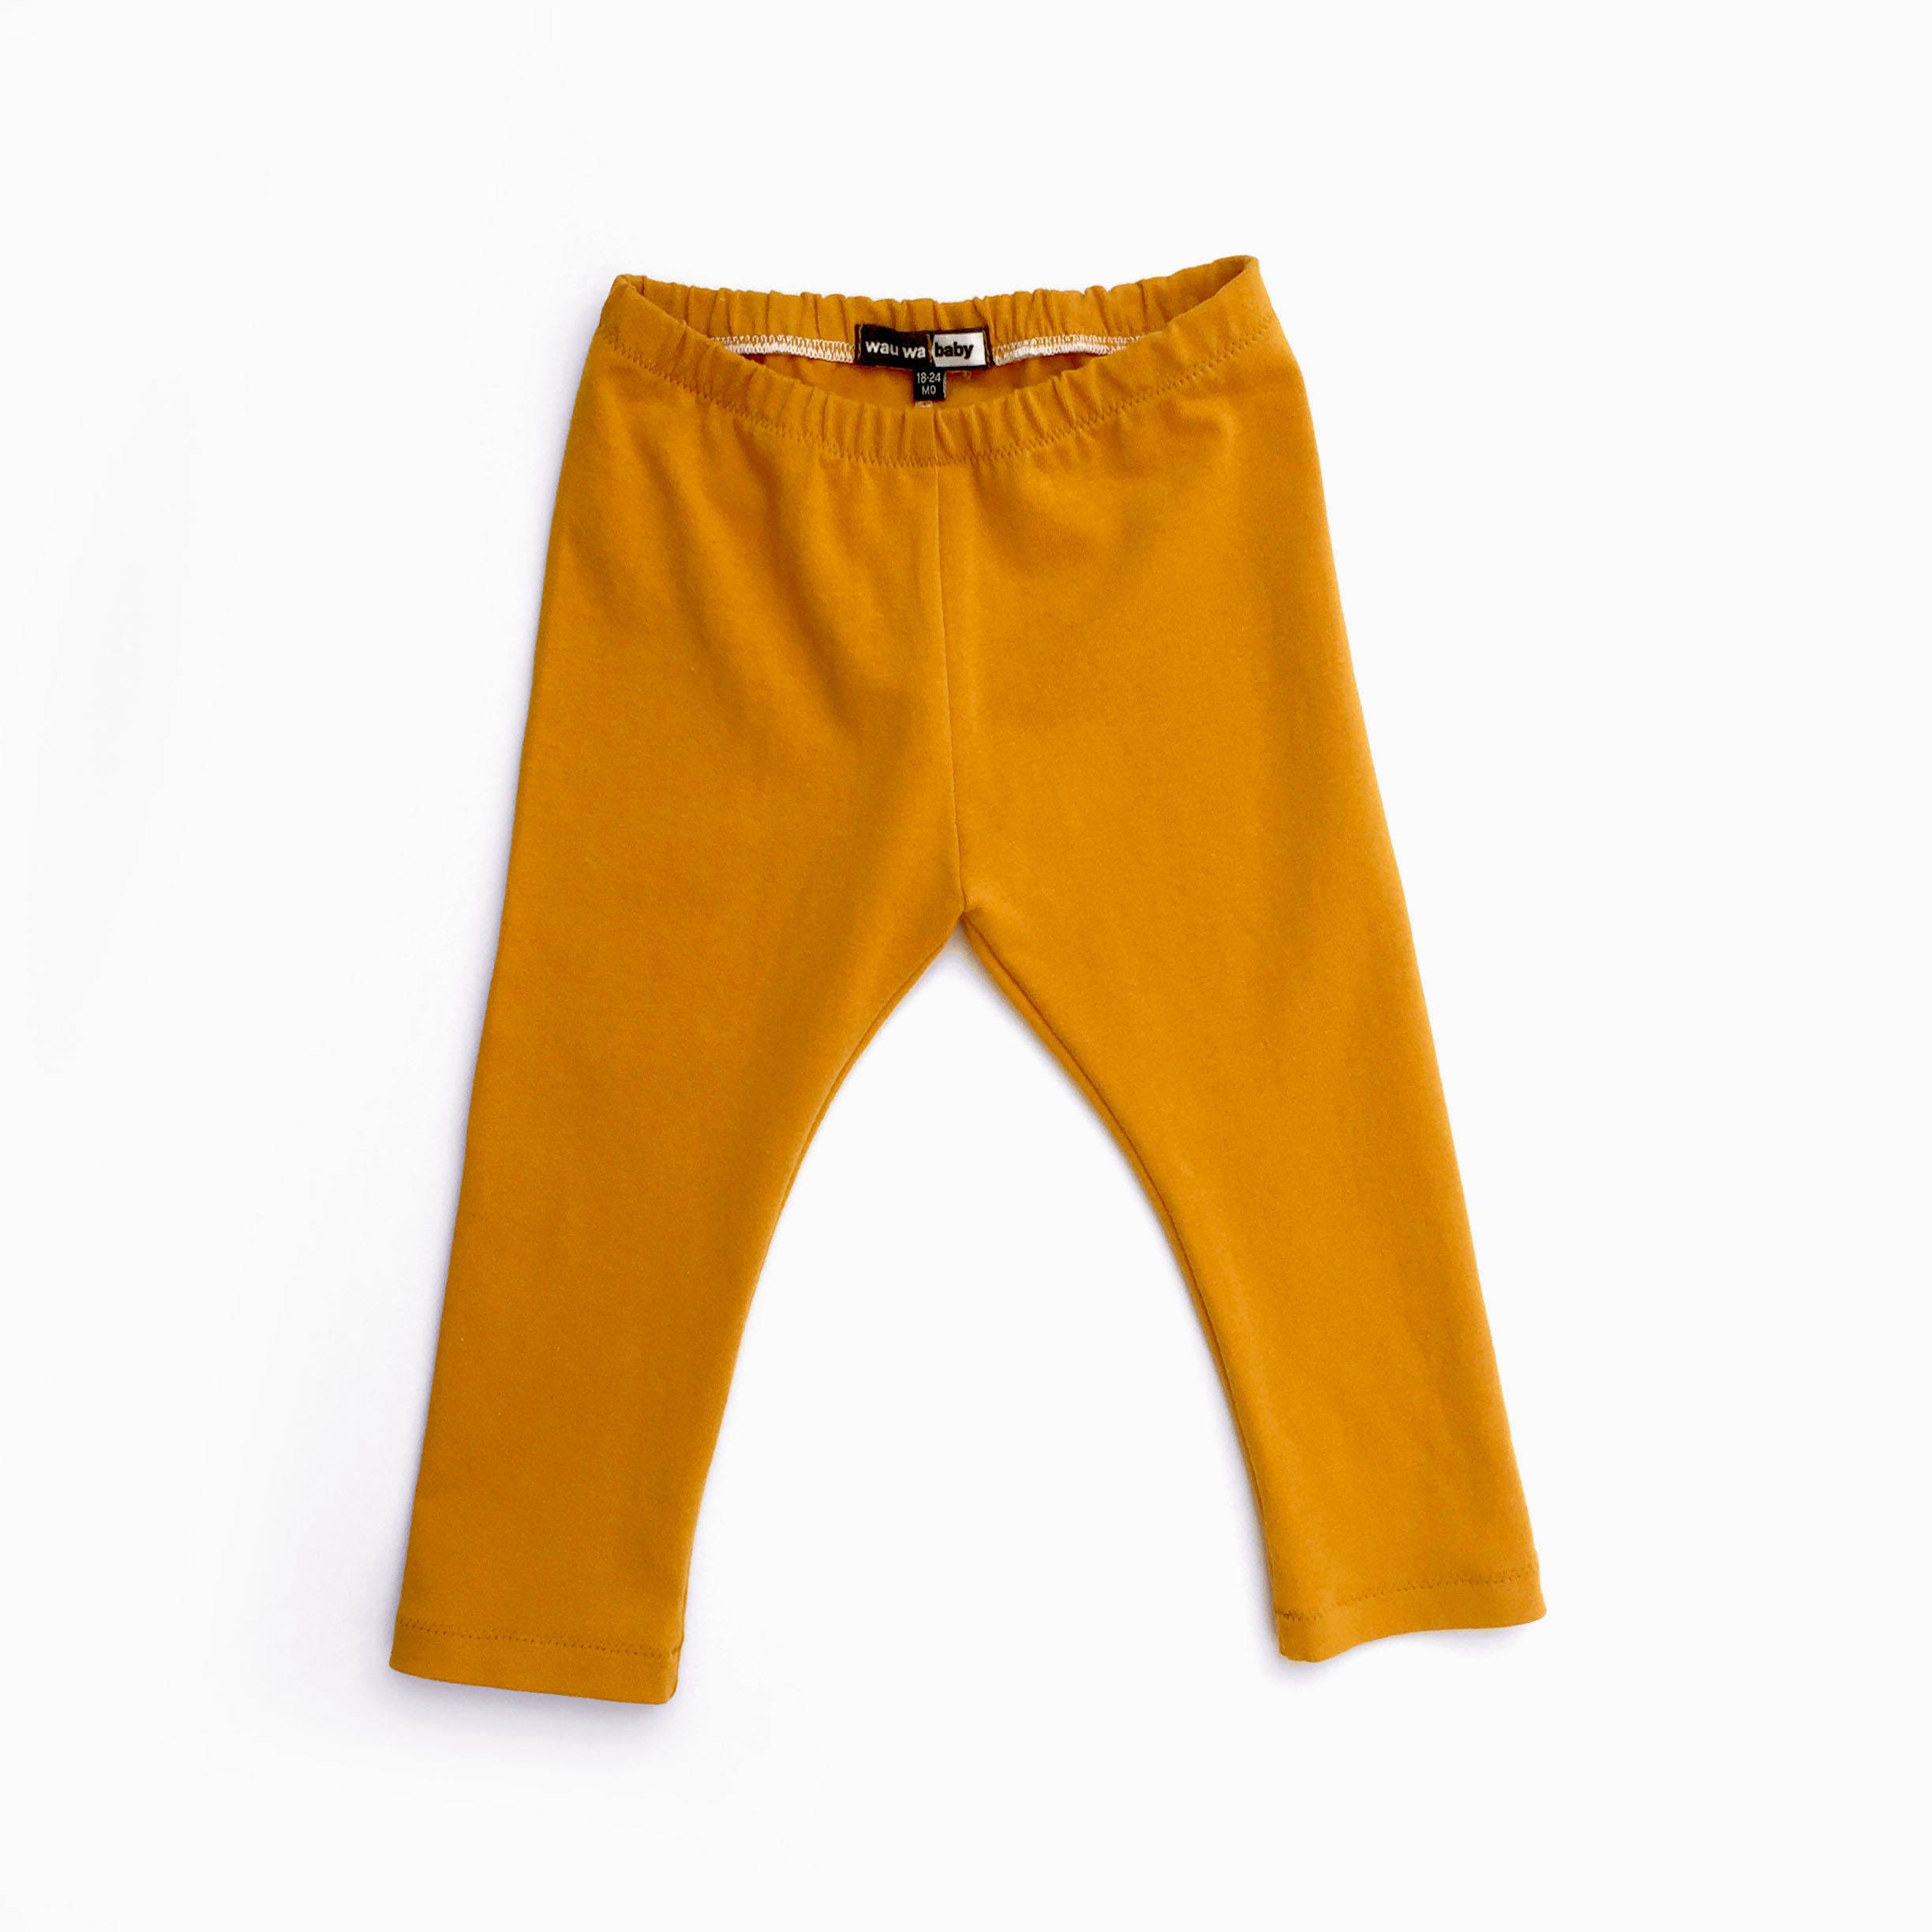 Fred & Noah are a luxury British brand specialising in unisex baby leggings, and children's fashion from years.